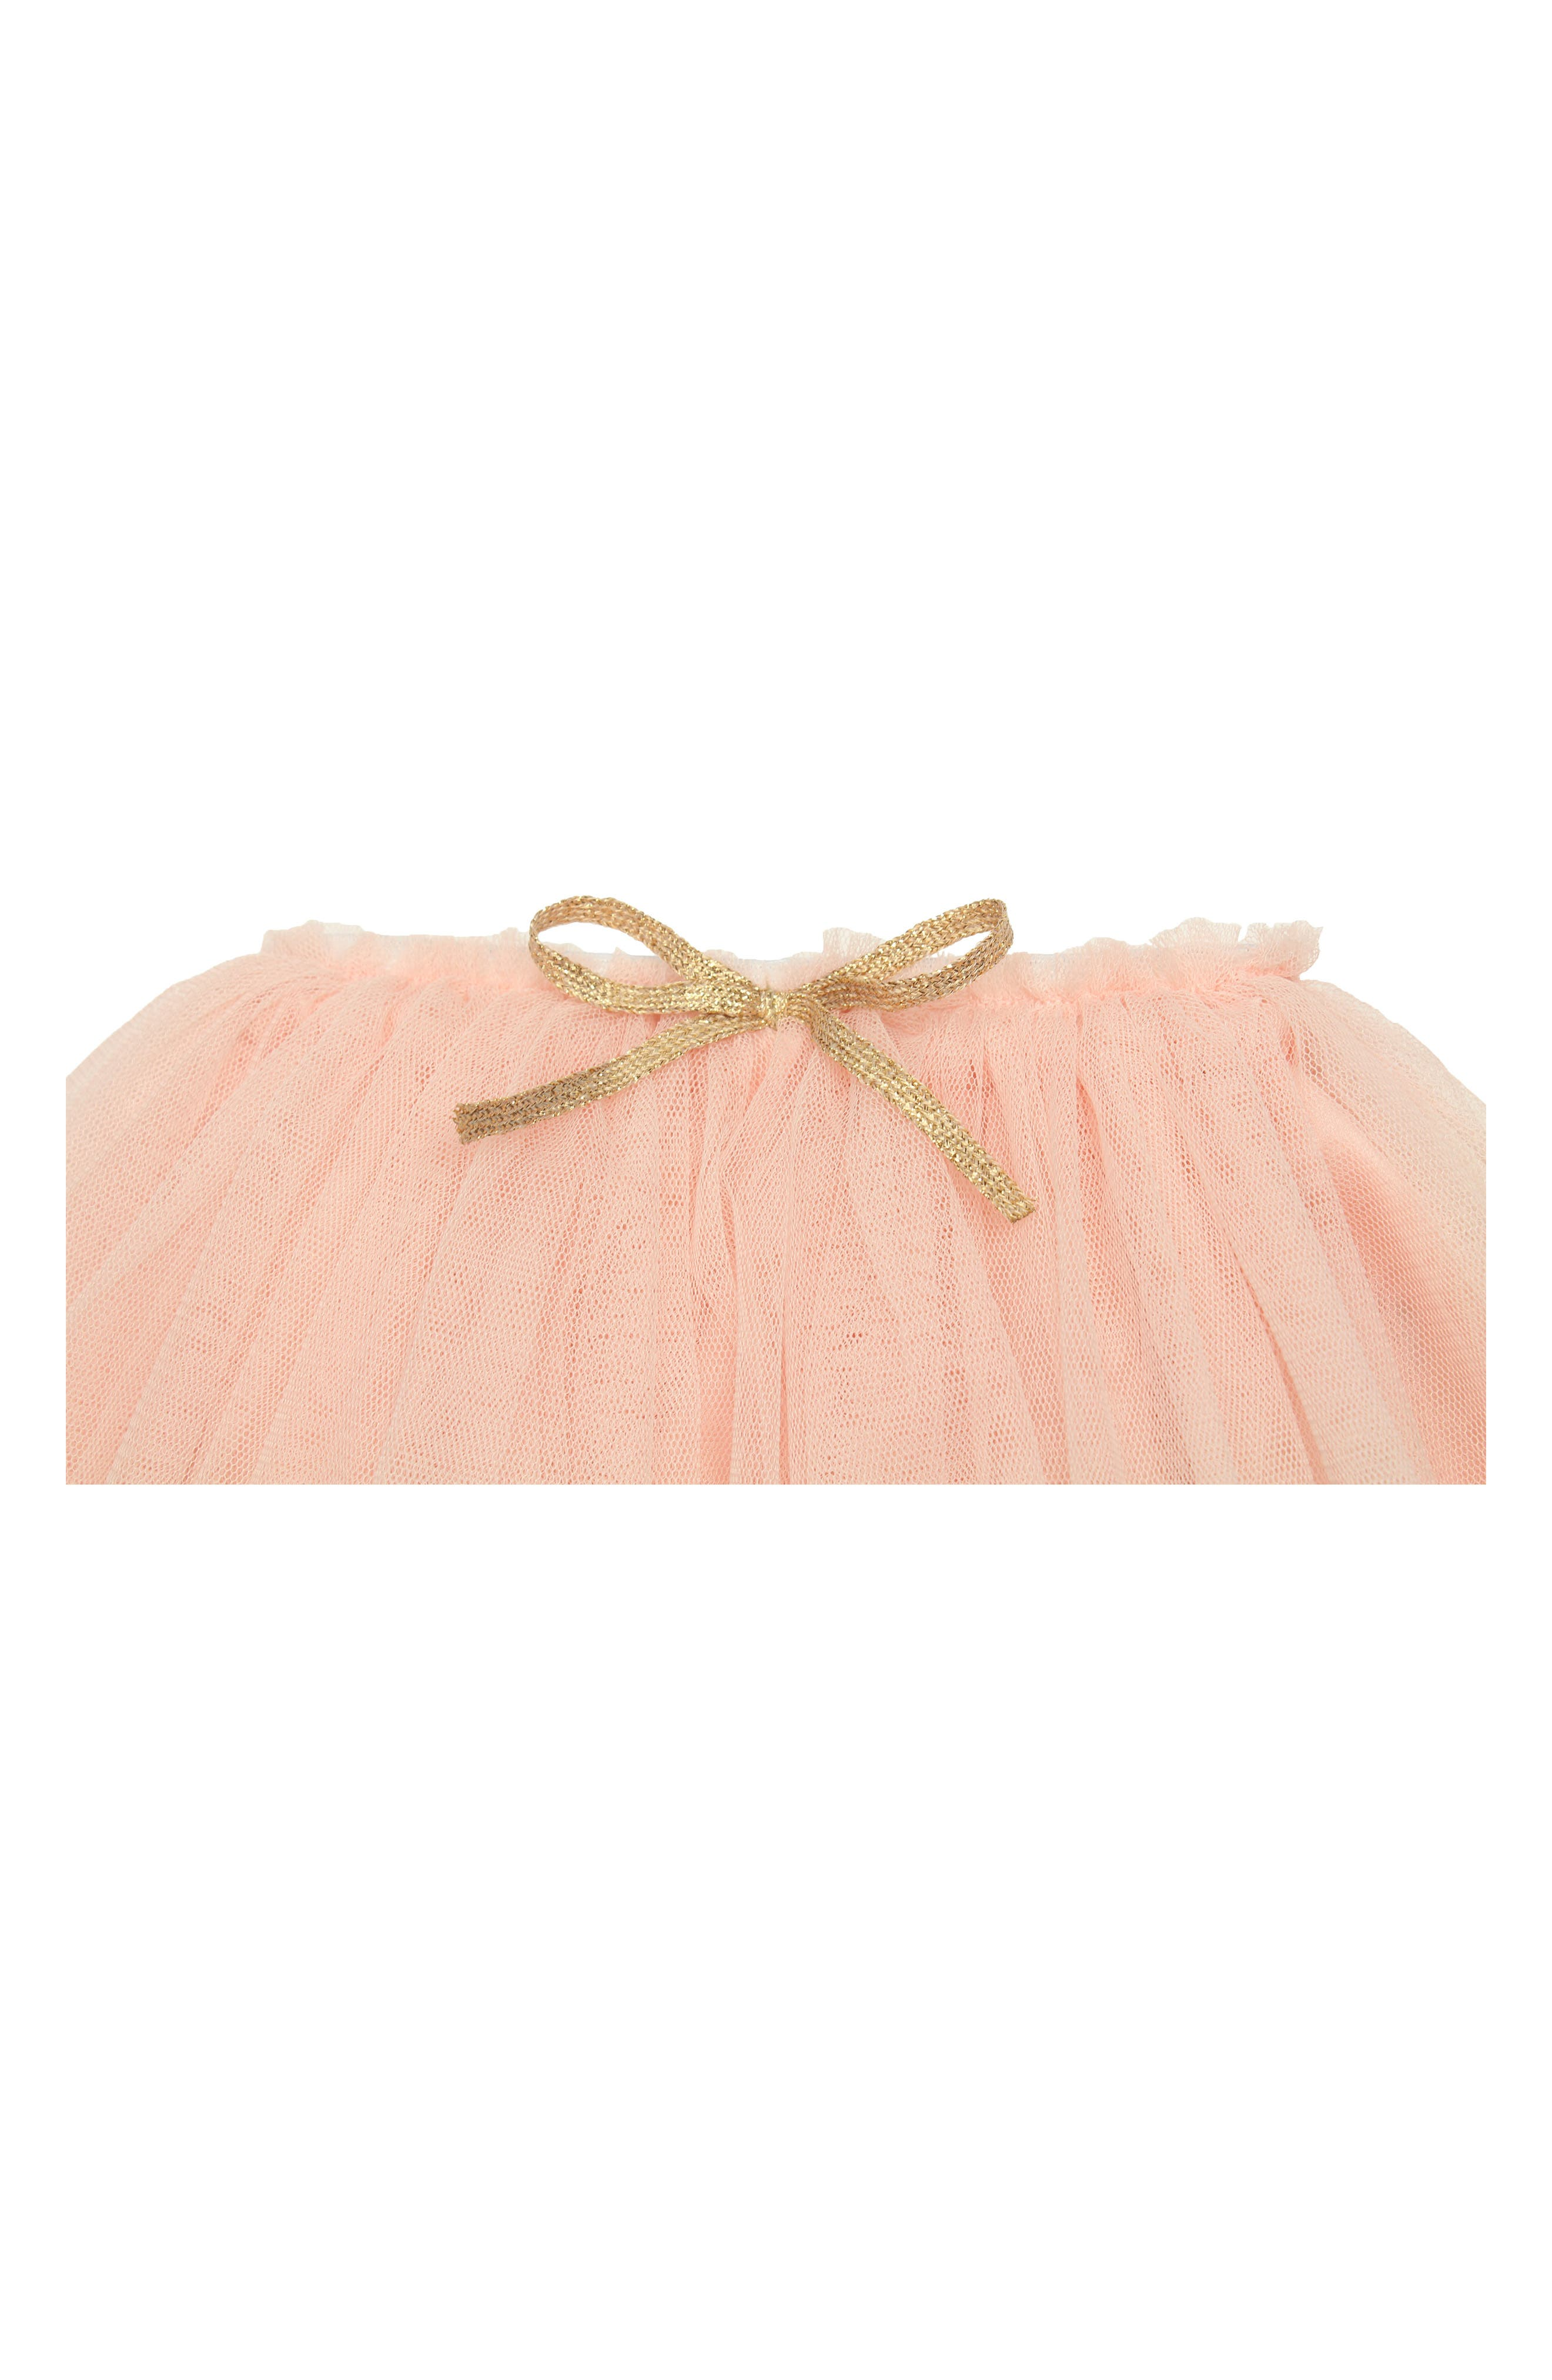 Tutu Skirt,                             Alternate thumbnail 2, color,                             ROSE